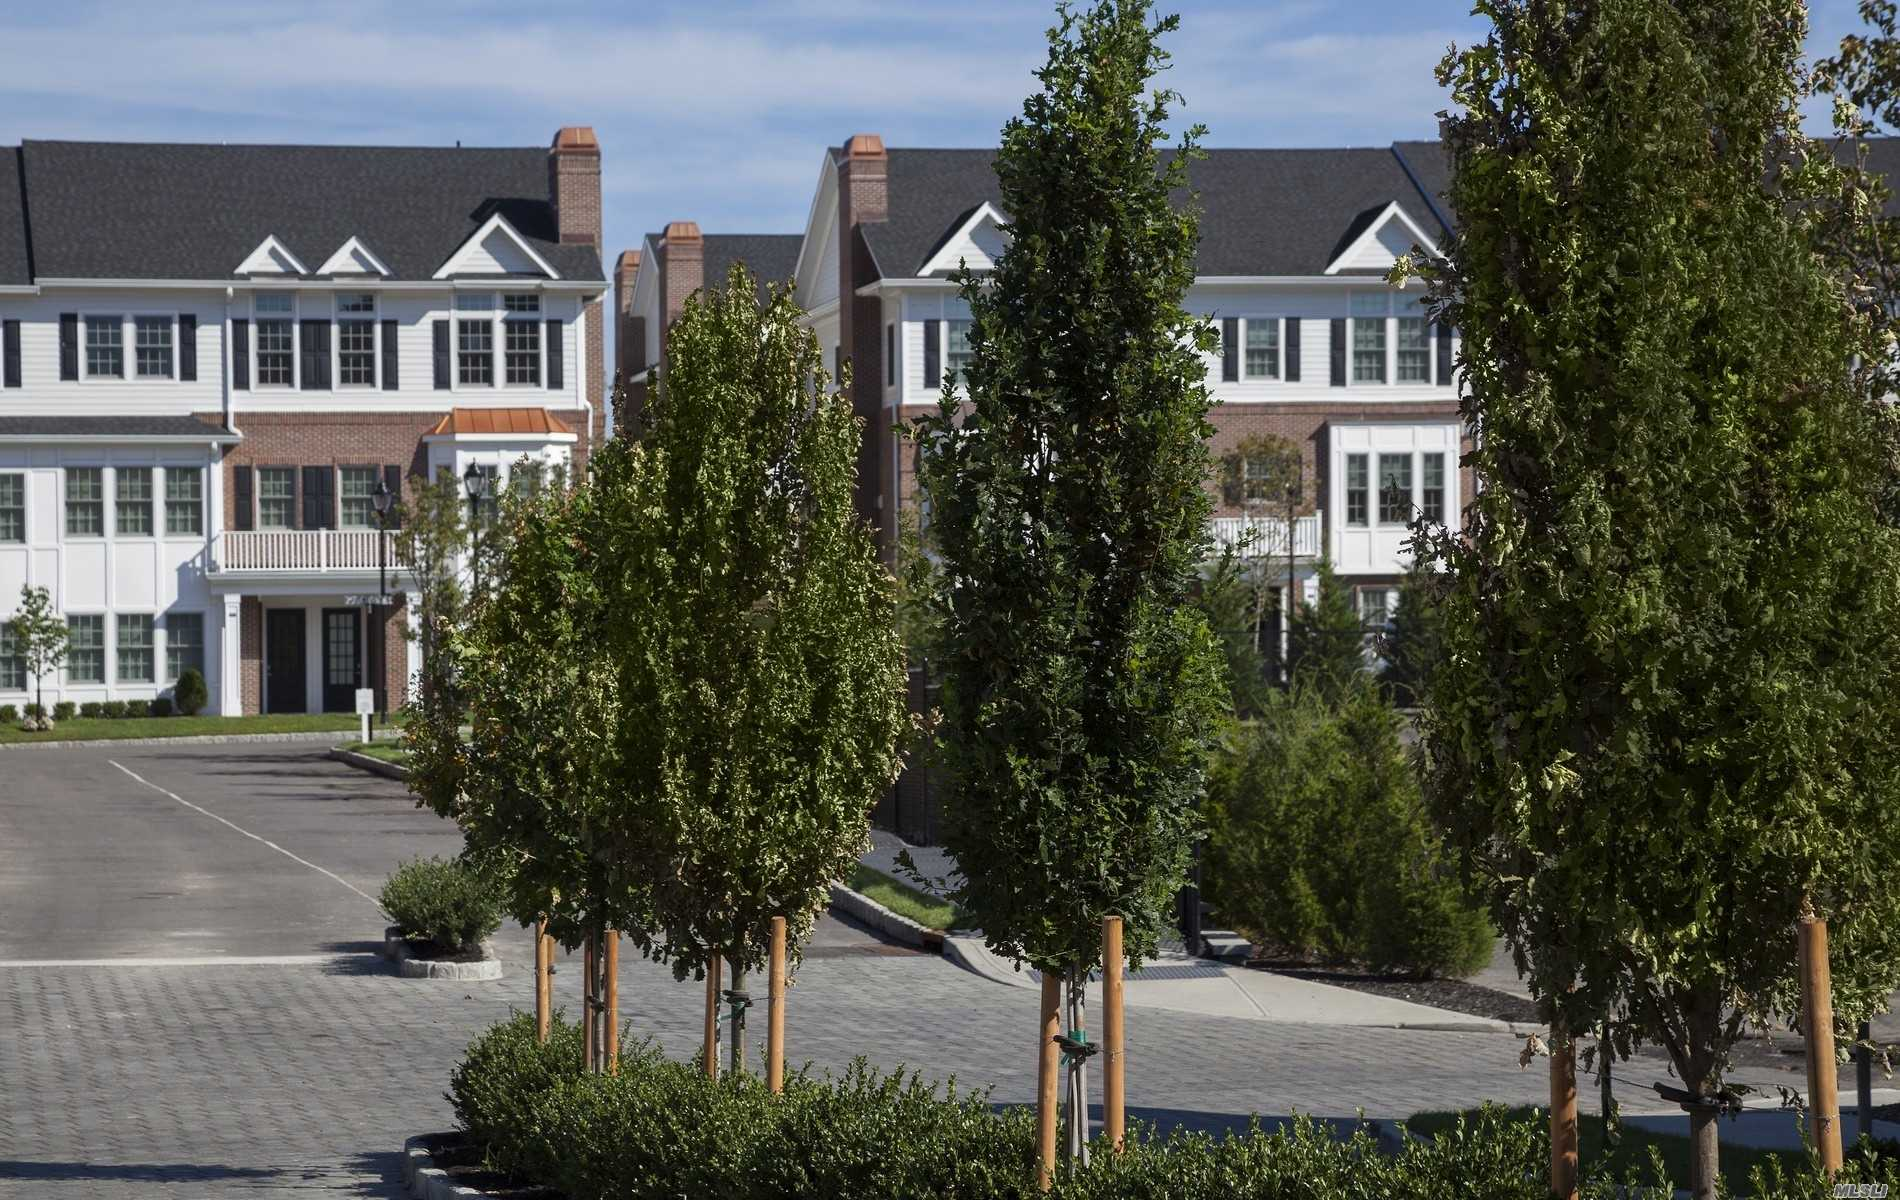 Luxury New Townhouses In The Heart Of Roslyn Village. Elegant 2800+SqFt 3 Bed, 3 Bath Condo Featuring Top Of The Line Kitchen And Baths,  Private Elevator, 2 Car Garage. Set On 12 Acres w Waterside Promenade, Kayaks, BBQ Area, Playground And Private Clubhouse. True Urban-Suburban Living. One Block To Town, Shopping, Theater, Library And Restaurants.